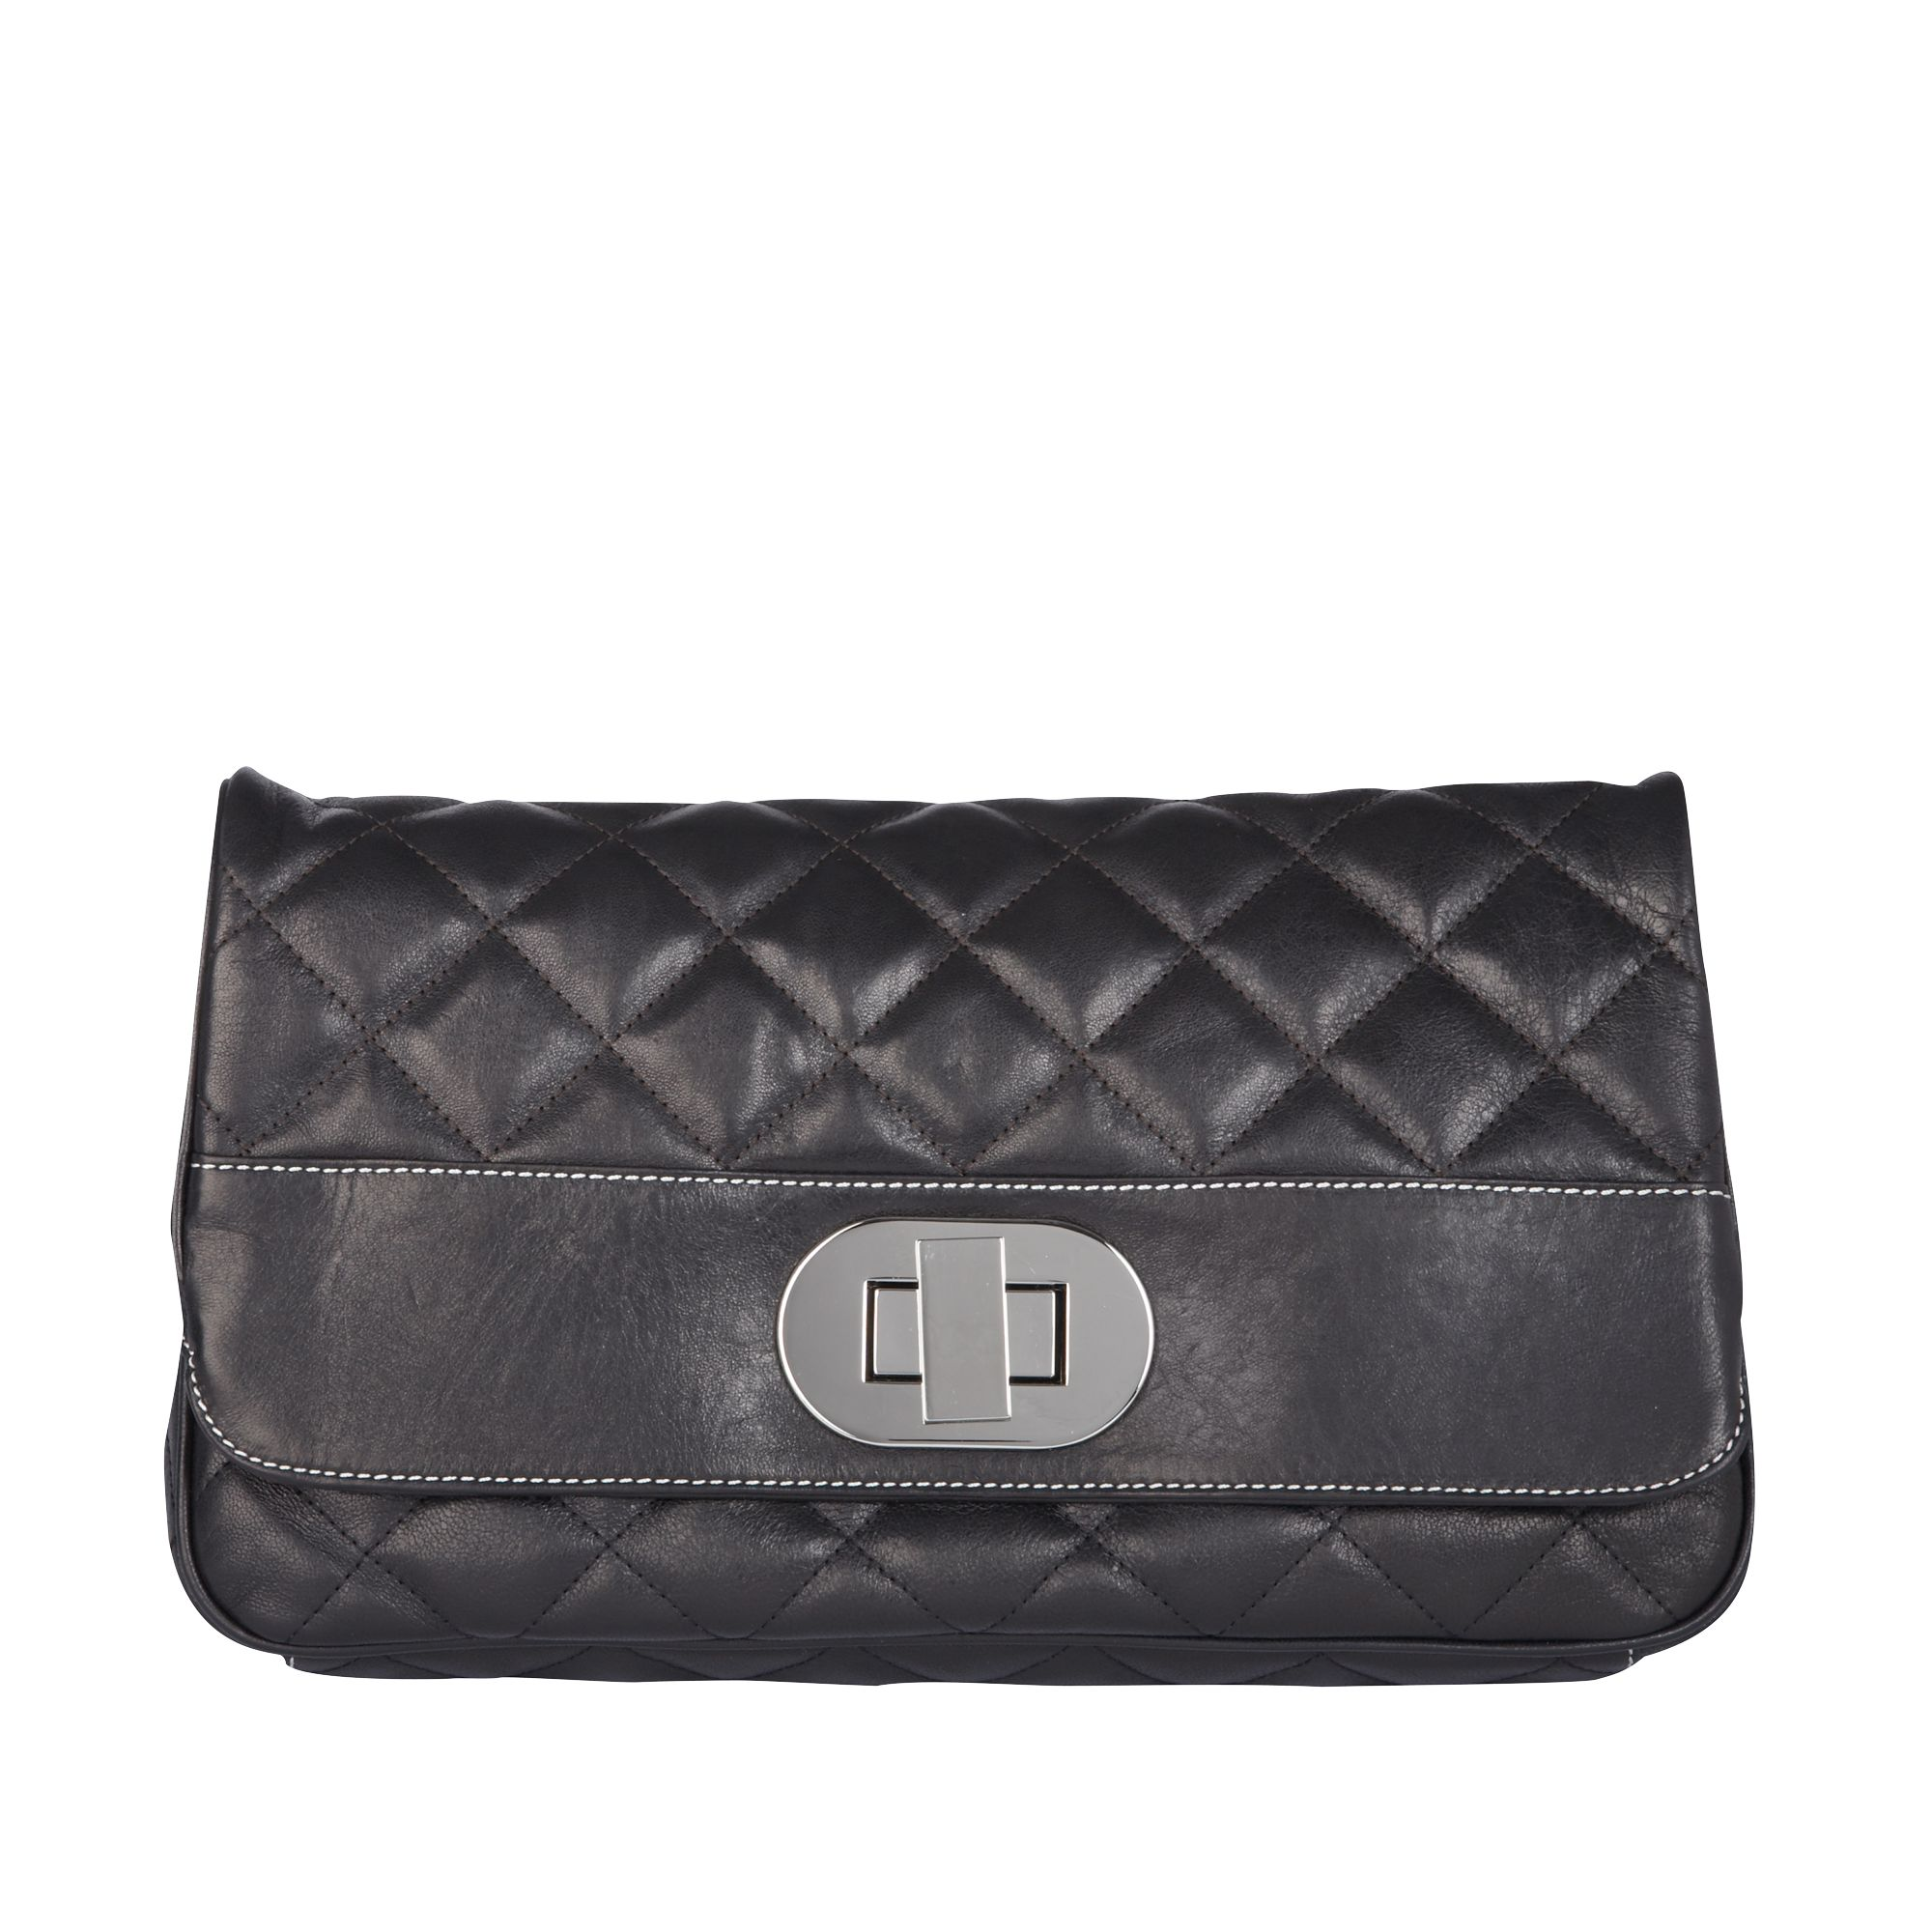 Tania large quilted leather